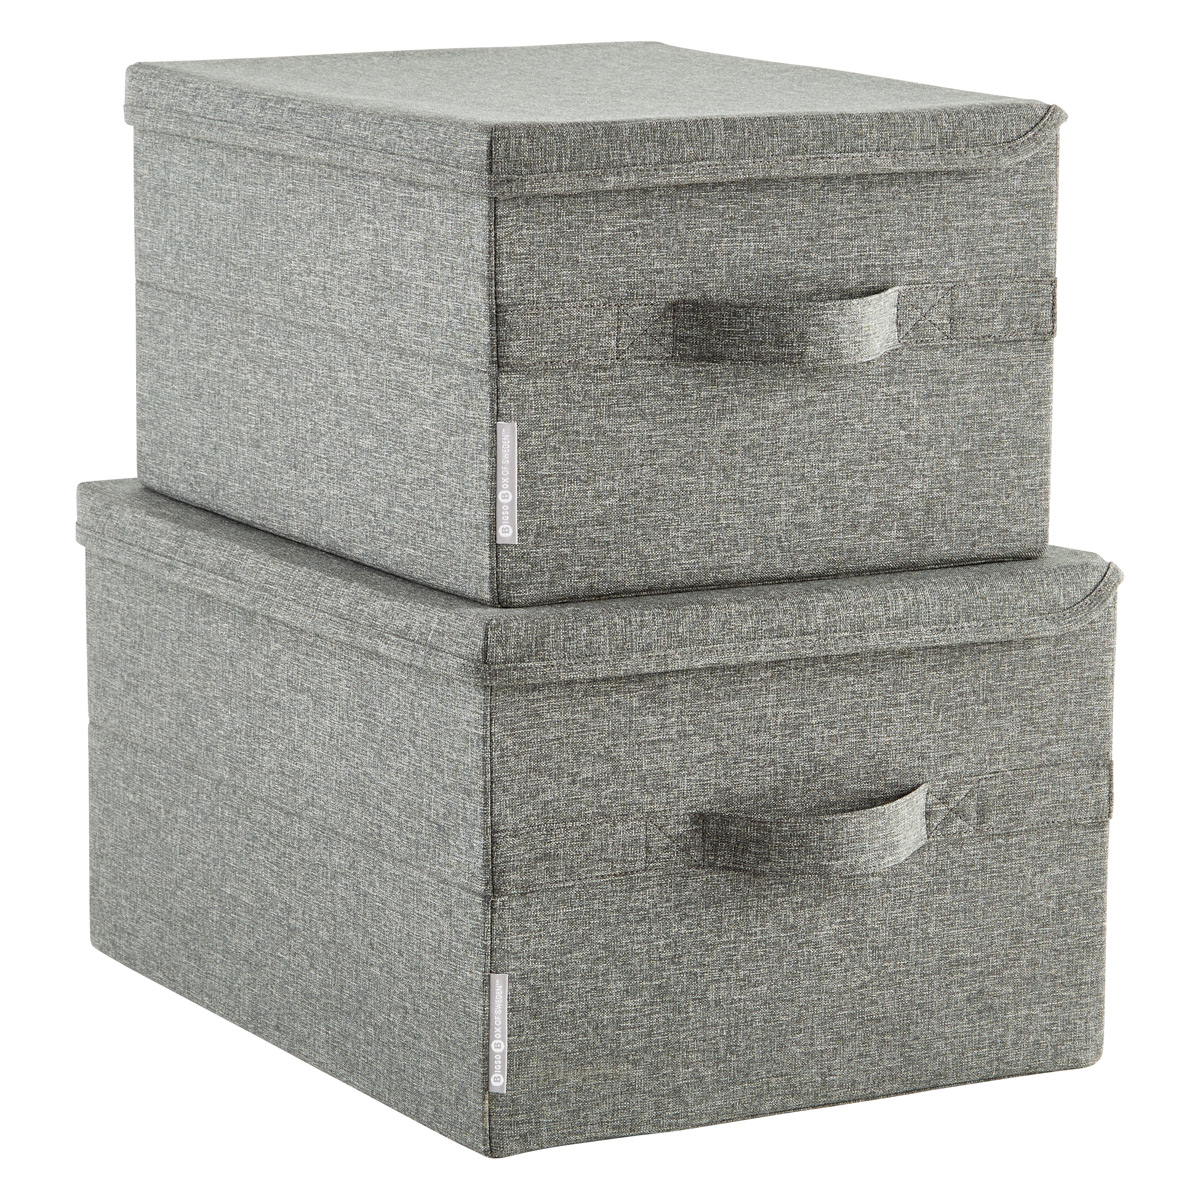 Merveilleux Bigso Grey Soft Storage Boxes With Handles